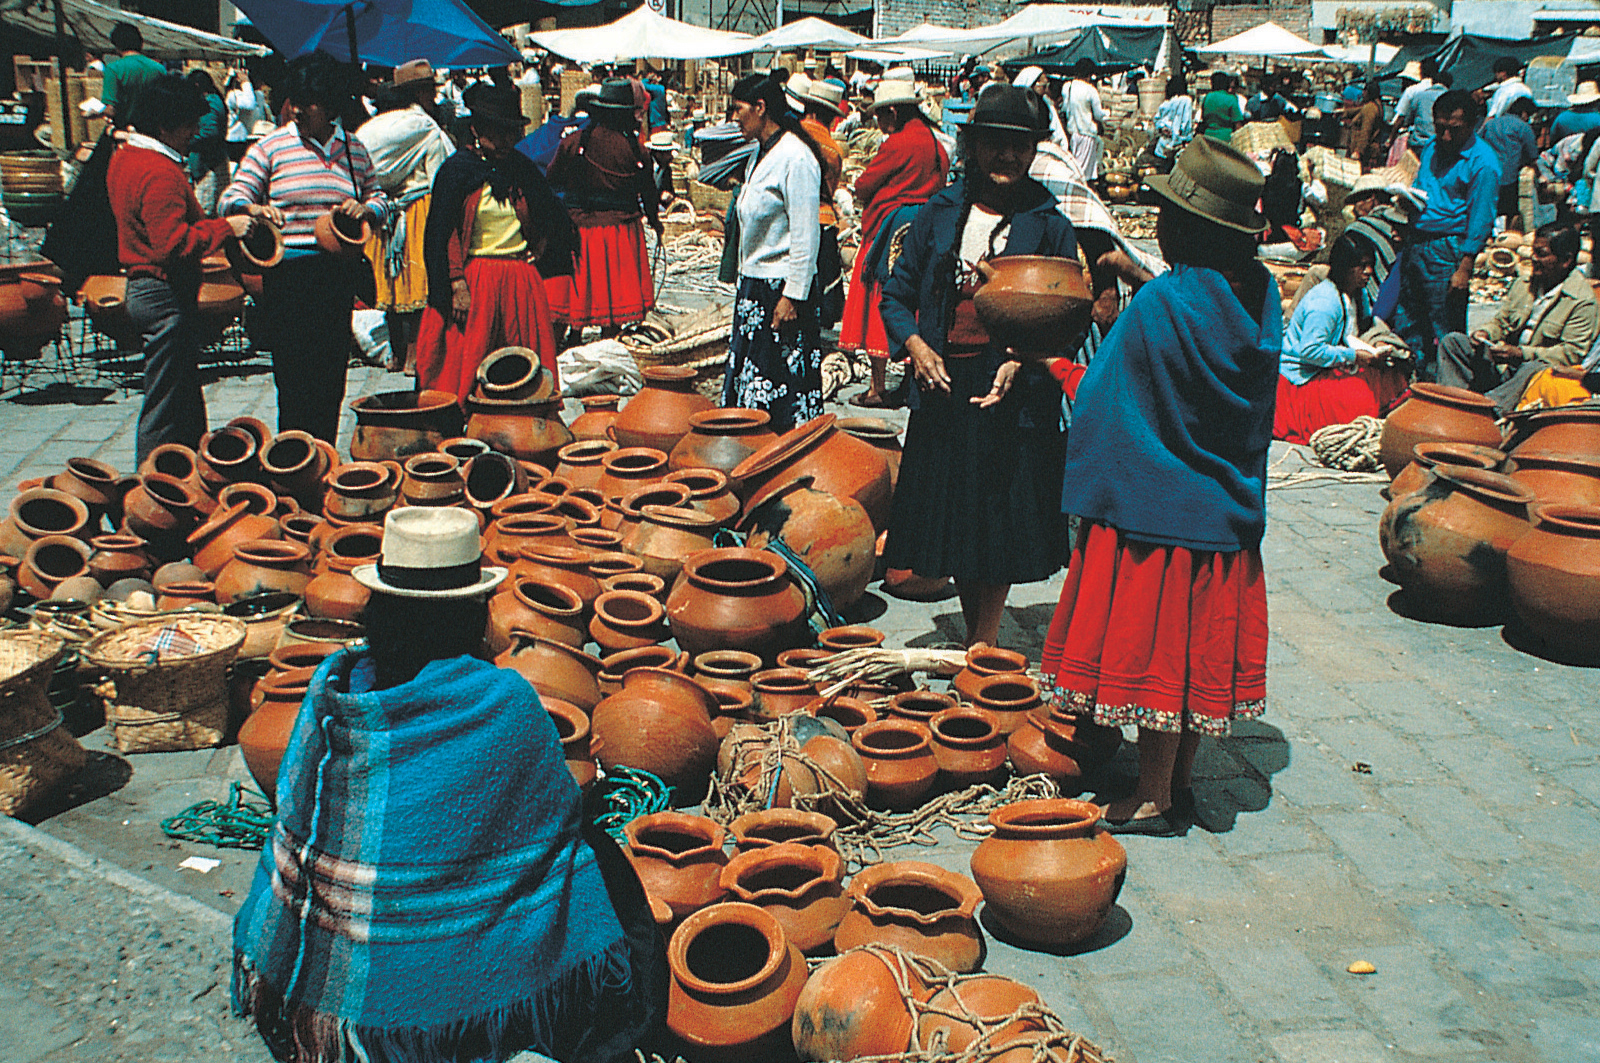 Market day in Ecuador